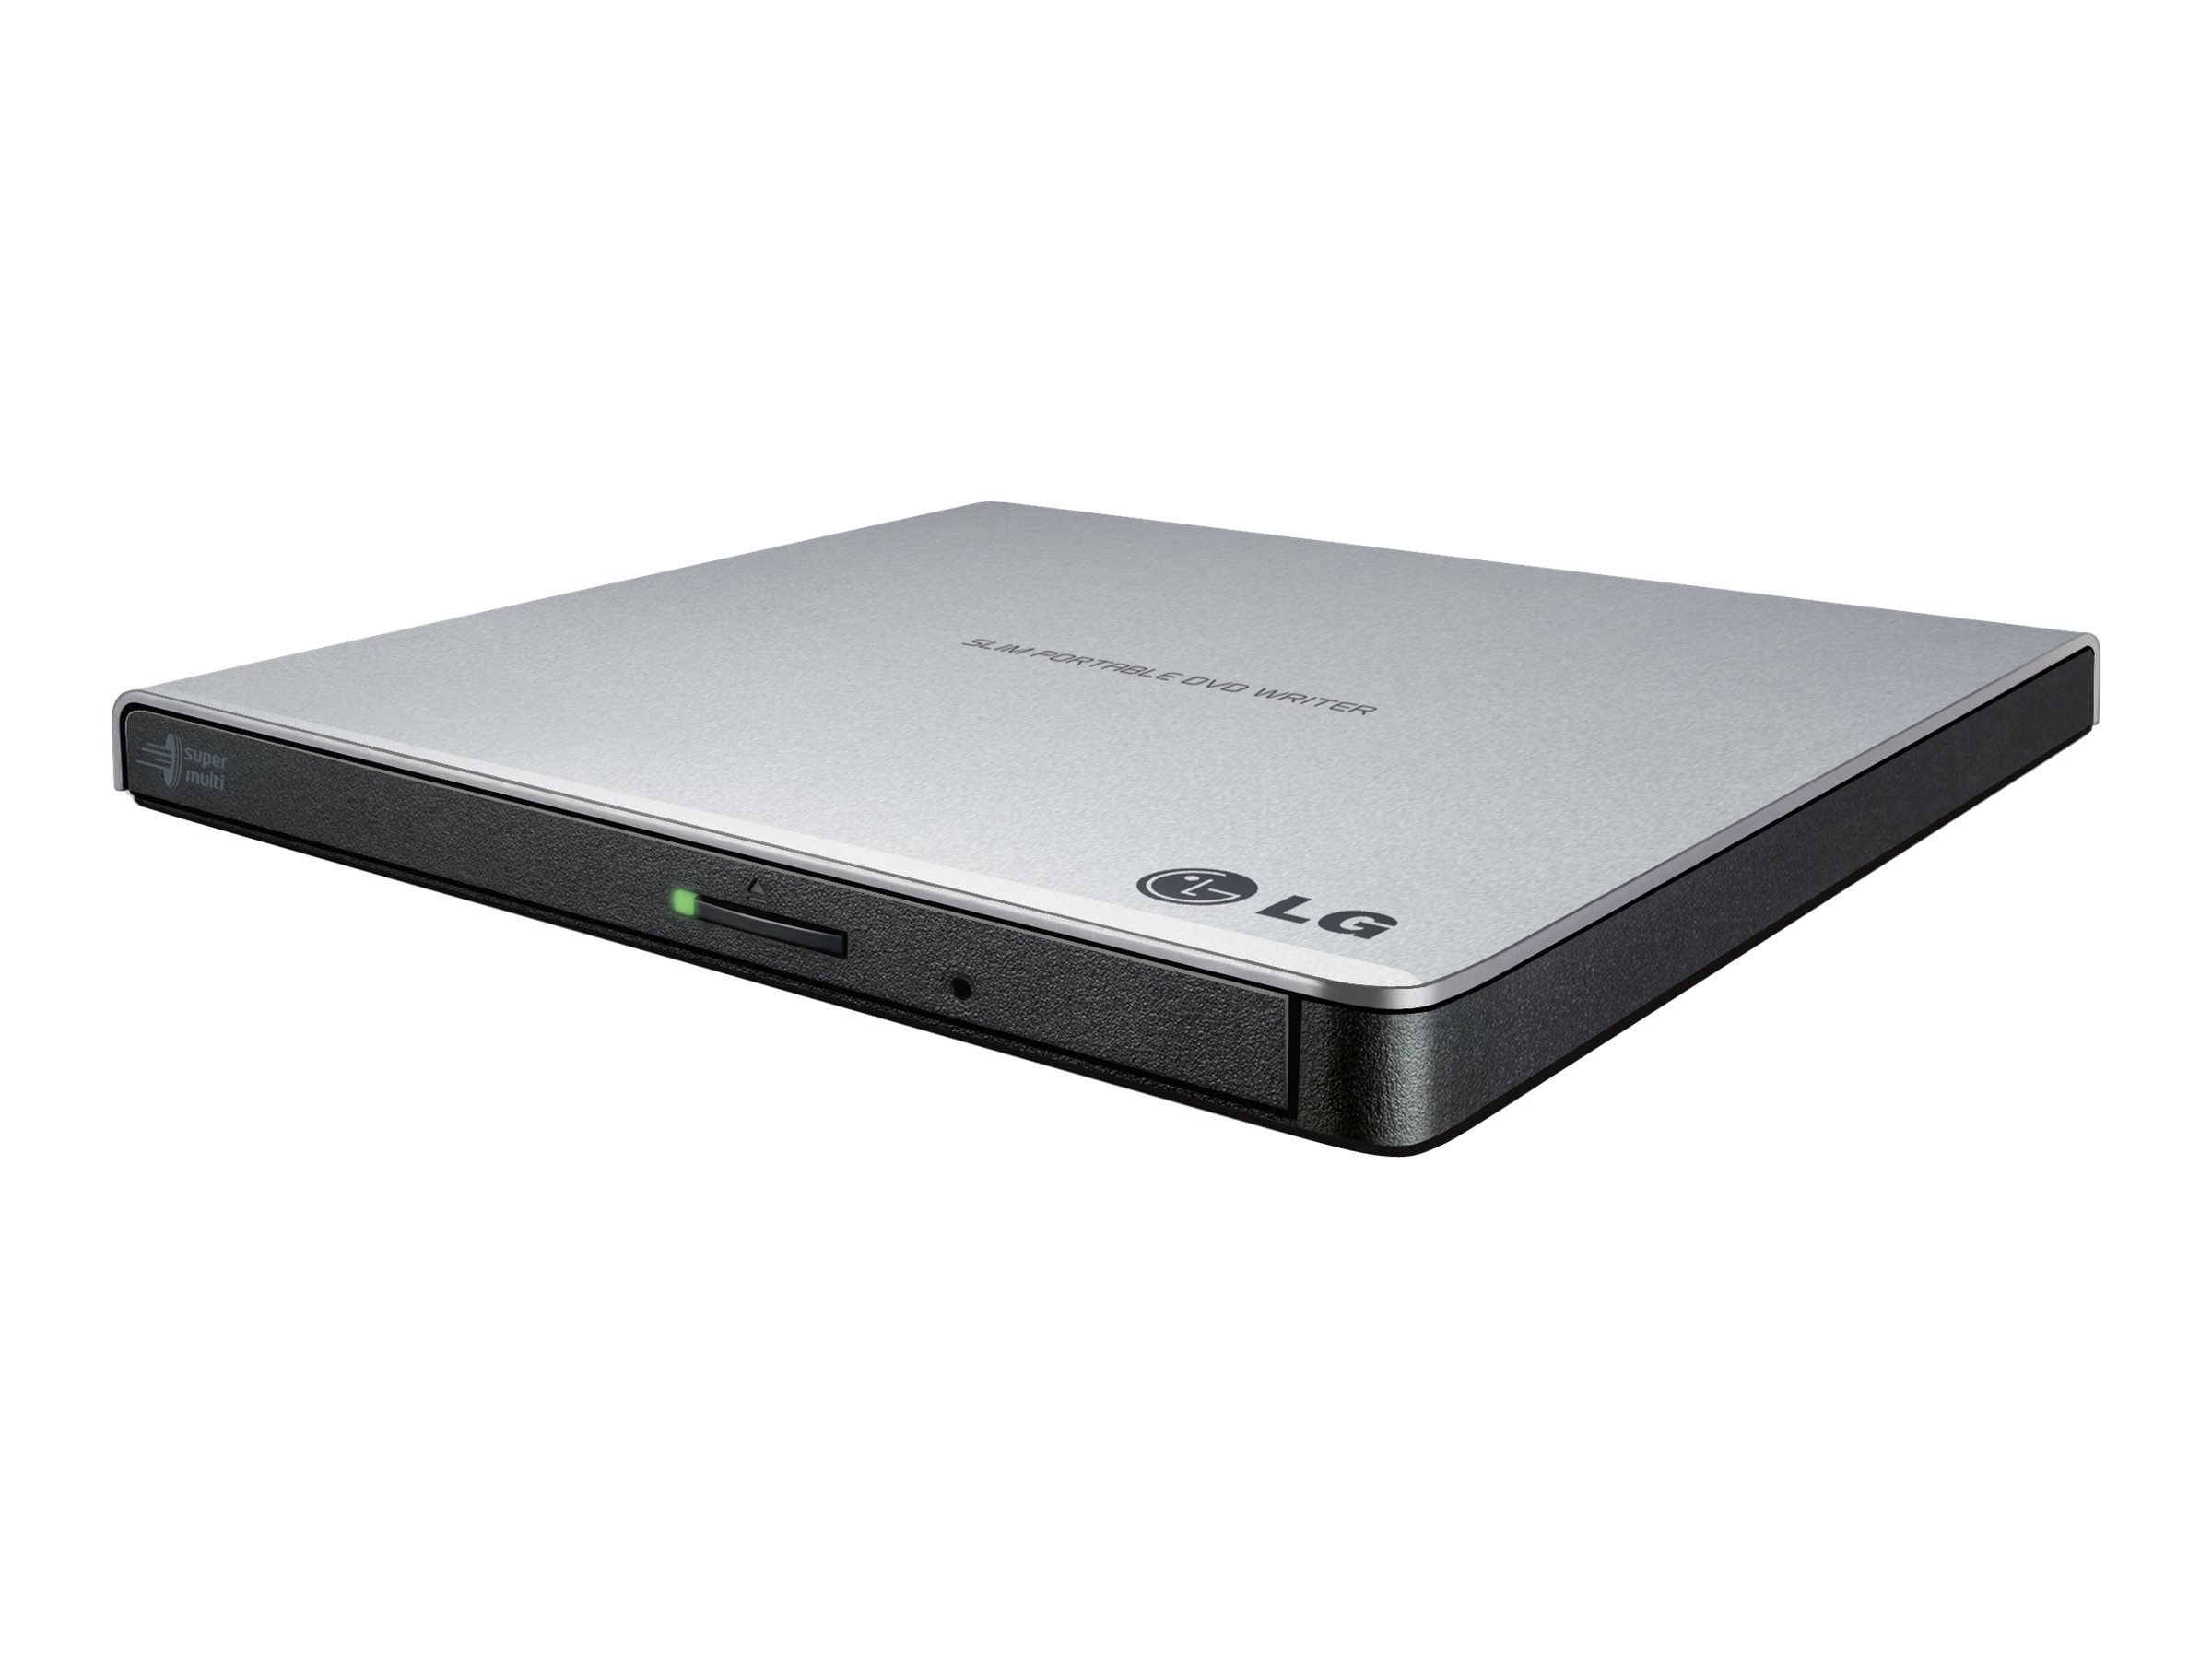 Image for Lg - Dvd±Rw (±R Dl) / Dvd-Ram Drive - Usb 2.0 from Circuit City